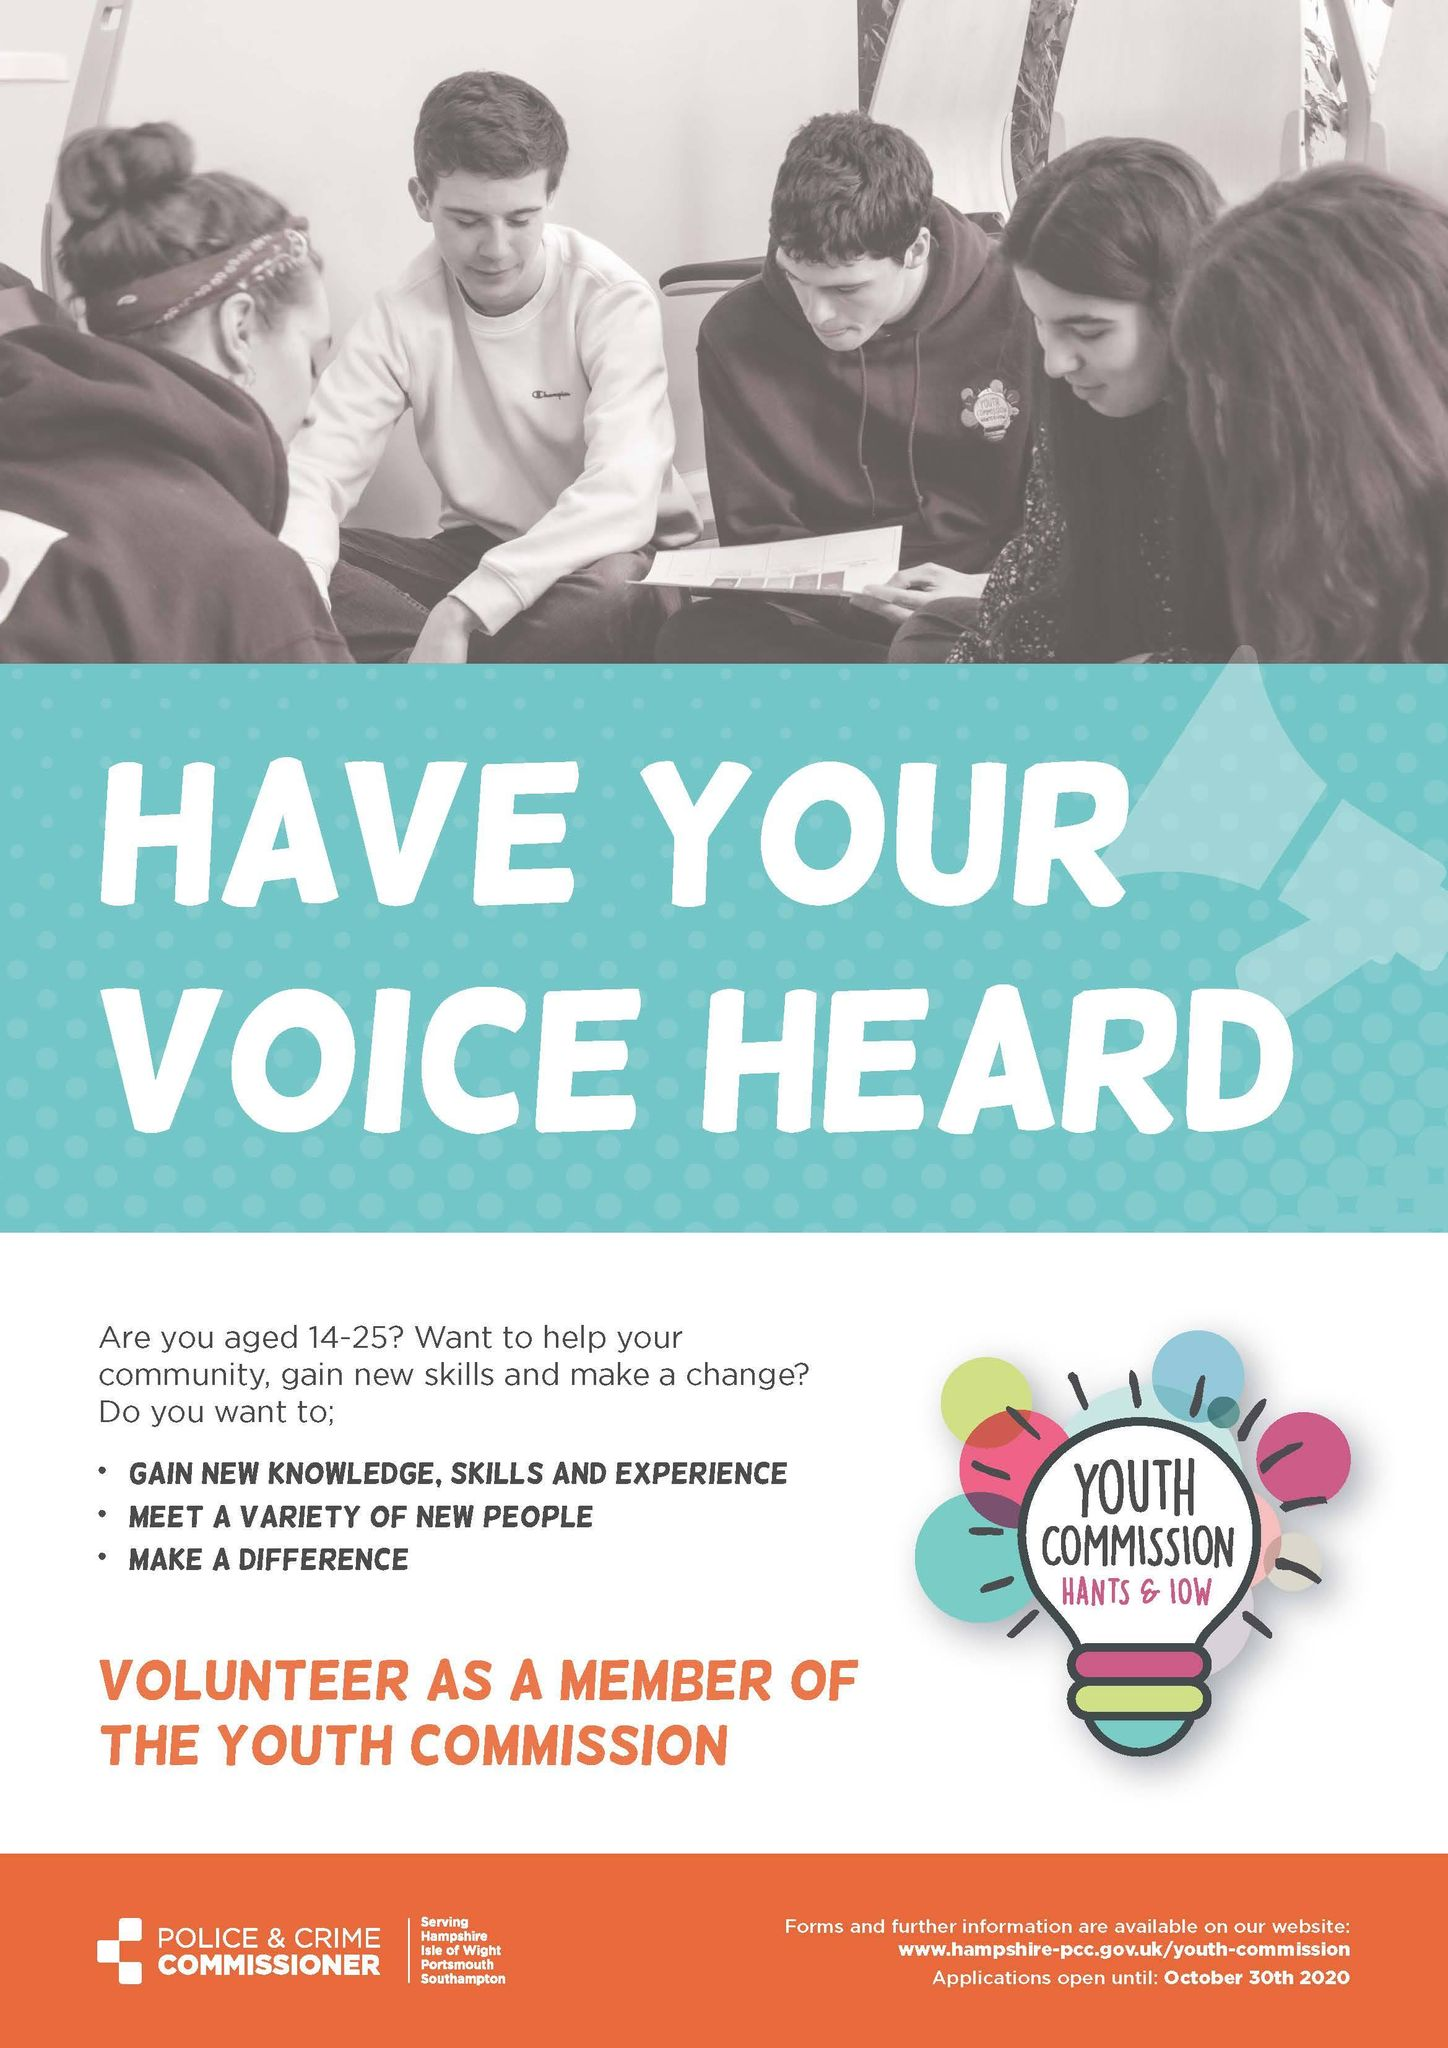 A poster encouraging young people to apply and volunteer as part of the youth commission